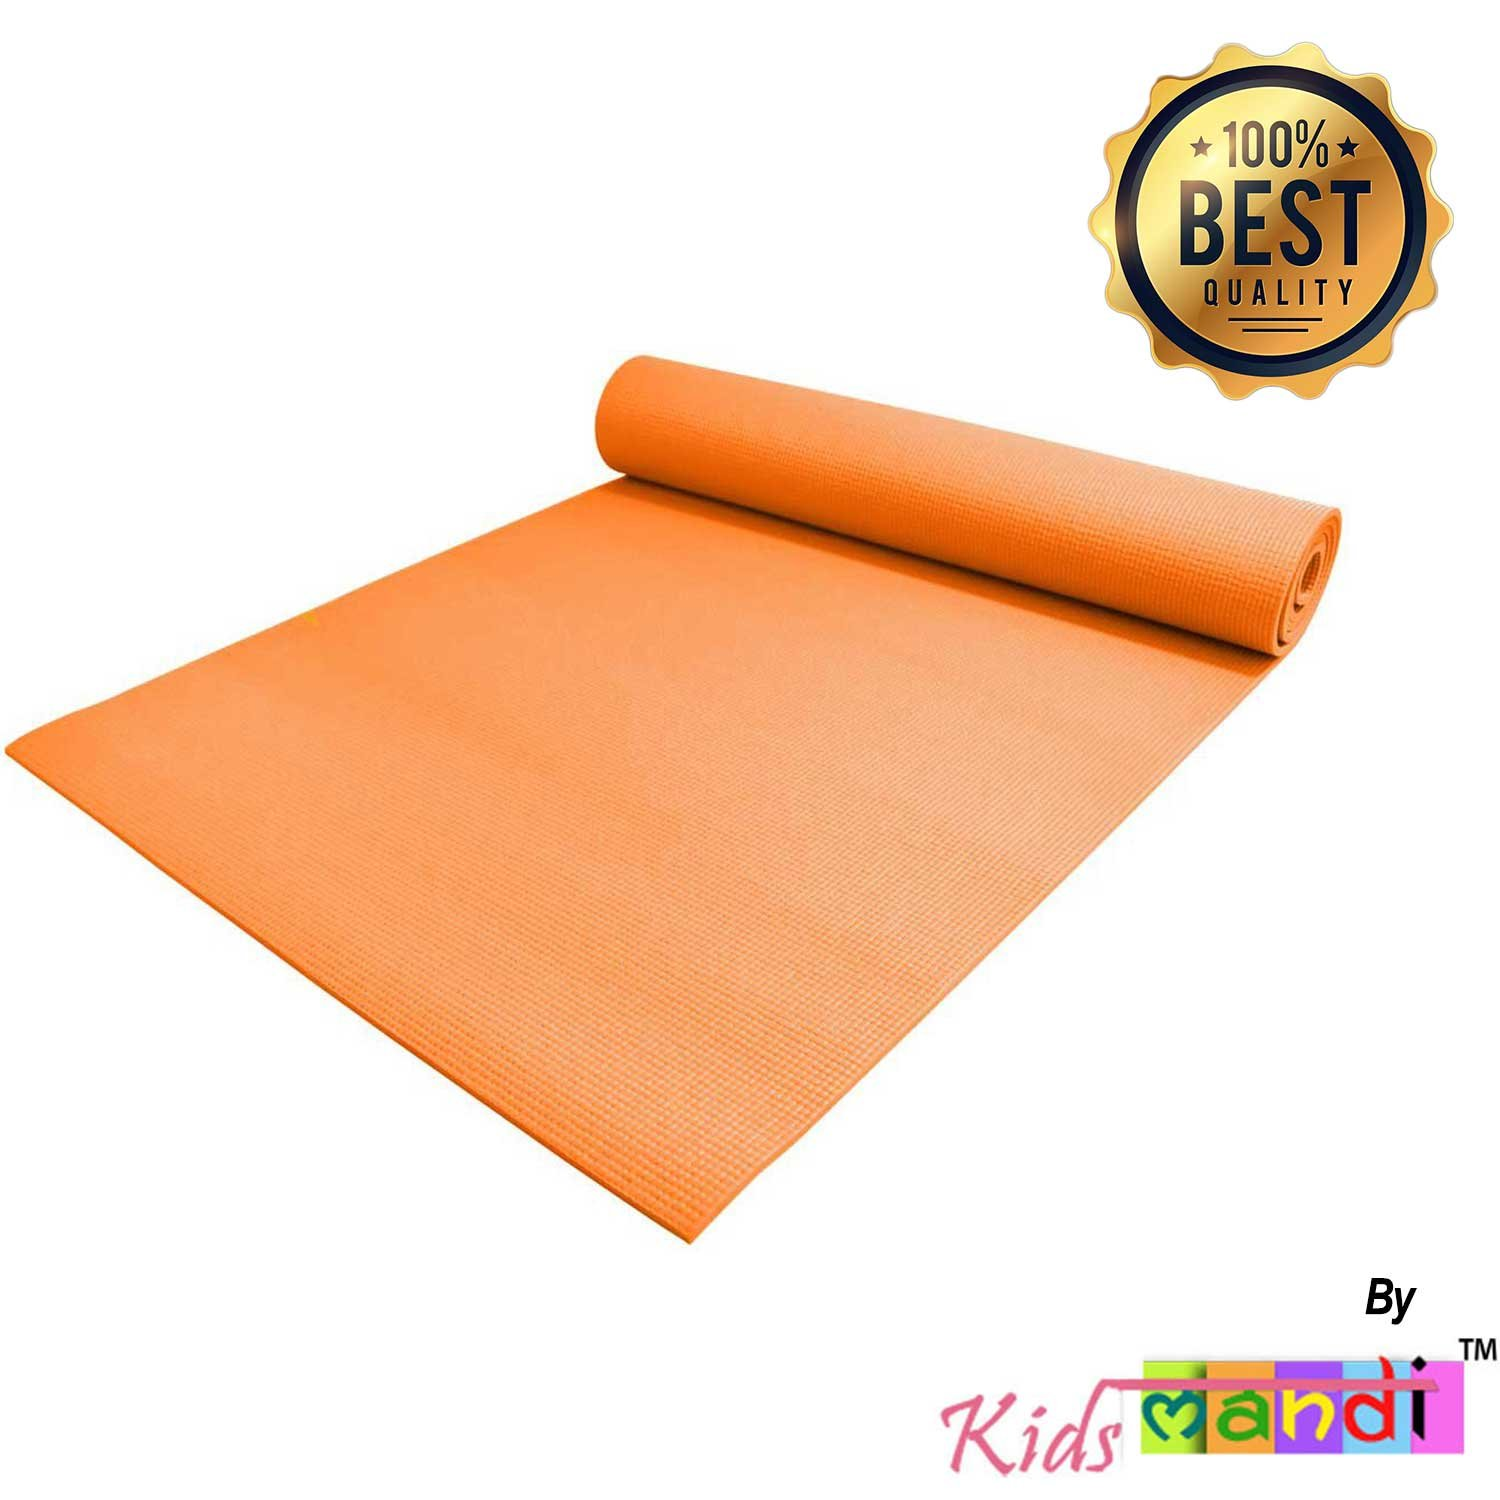 Amazon.com : Kids Mandi Km.Yogamat.4Mm.002 Body Ripper Yoga ...